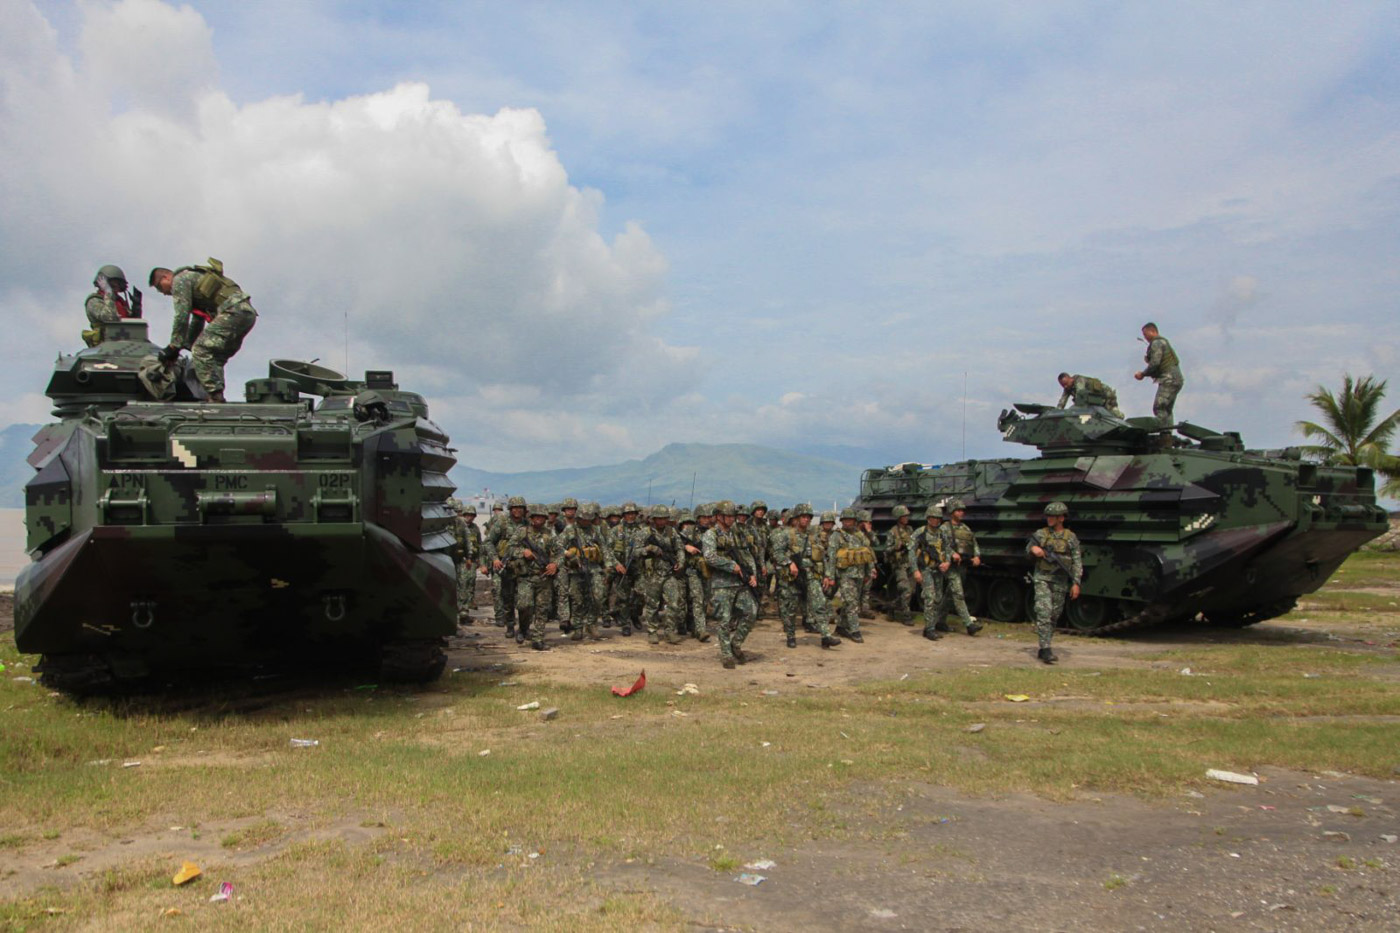 SEA TO LAND. The Armed Forces of the Philippines (AFP) says amphibious assaults are essential to militaries of coastal states like the Philippines, and the addition of 8 brand new amphibious assault vehicles (AAV) to its naval fleet boosts this capability. Photo by Rox Cezar, AFP Public Affairs Office